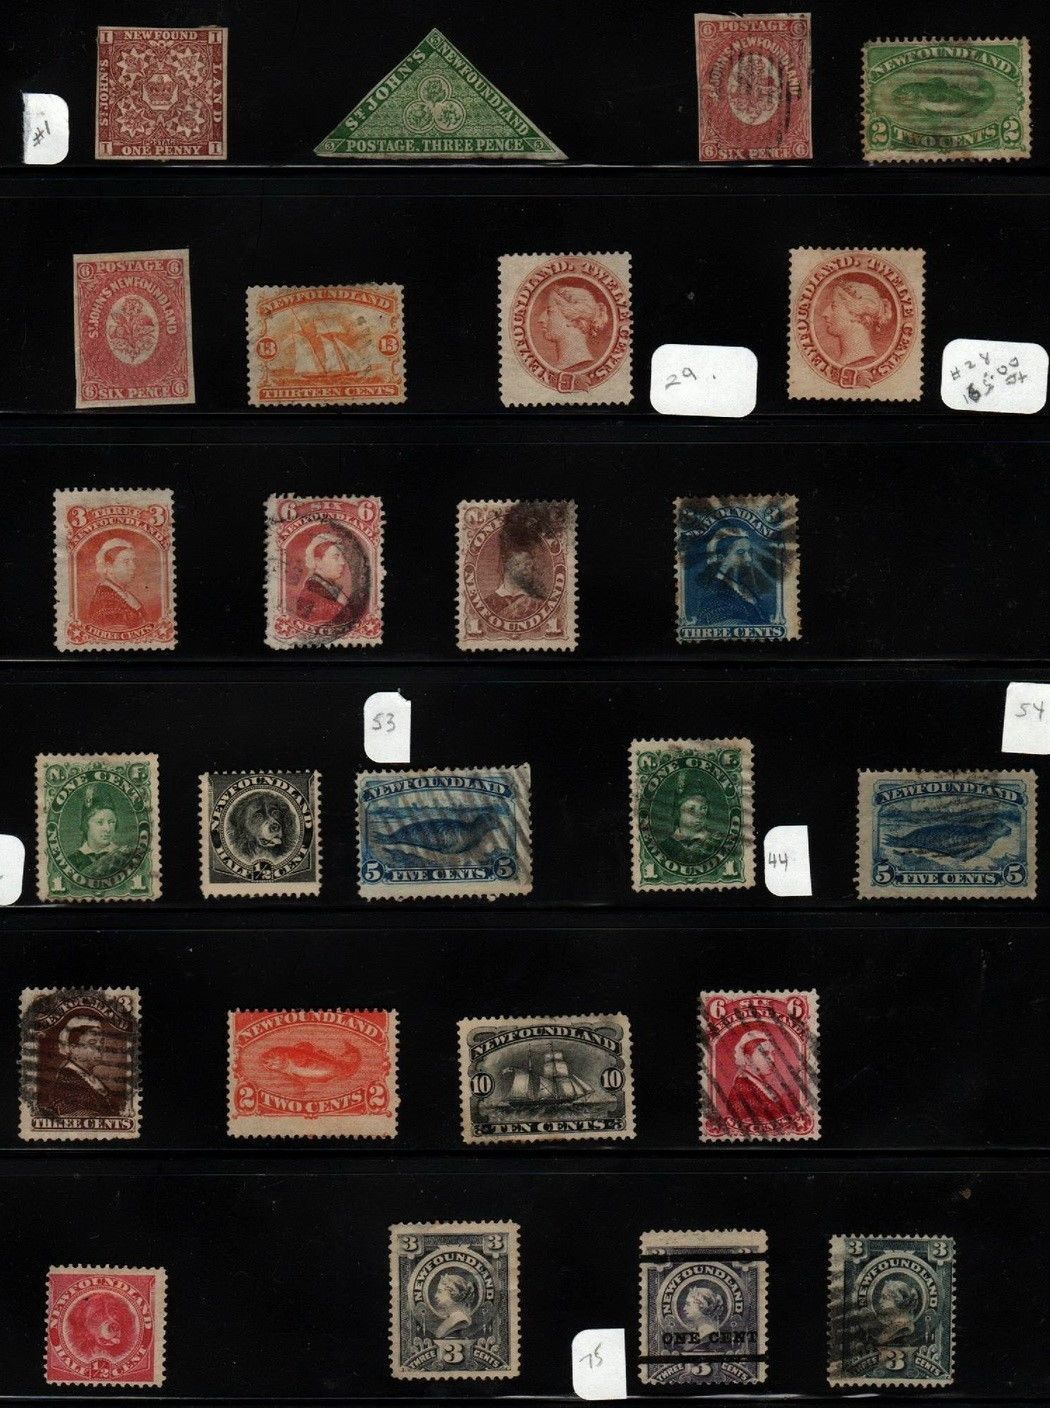 Newfoundland Collection from Strong Scott Vol I 1840-1940 Album VERY STRONG https://t.co/UQRpuskjyO https://t.co/u645w1V8Tf